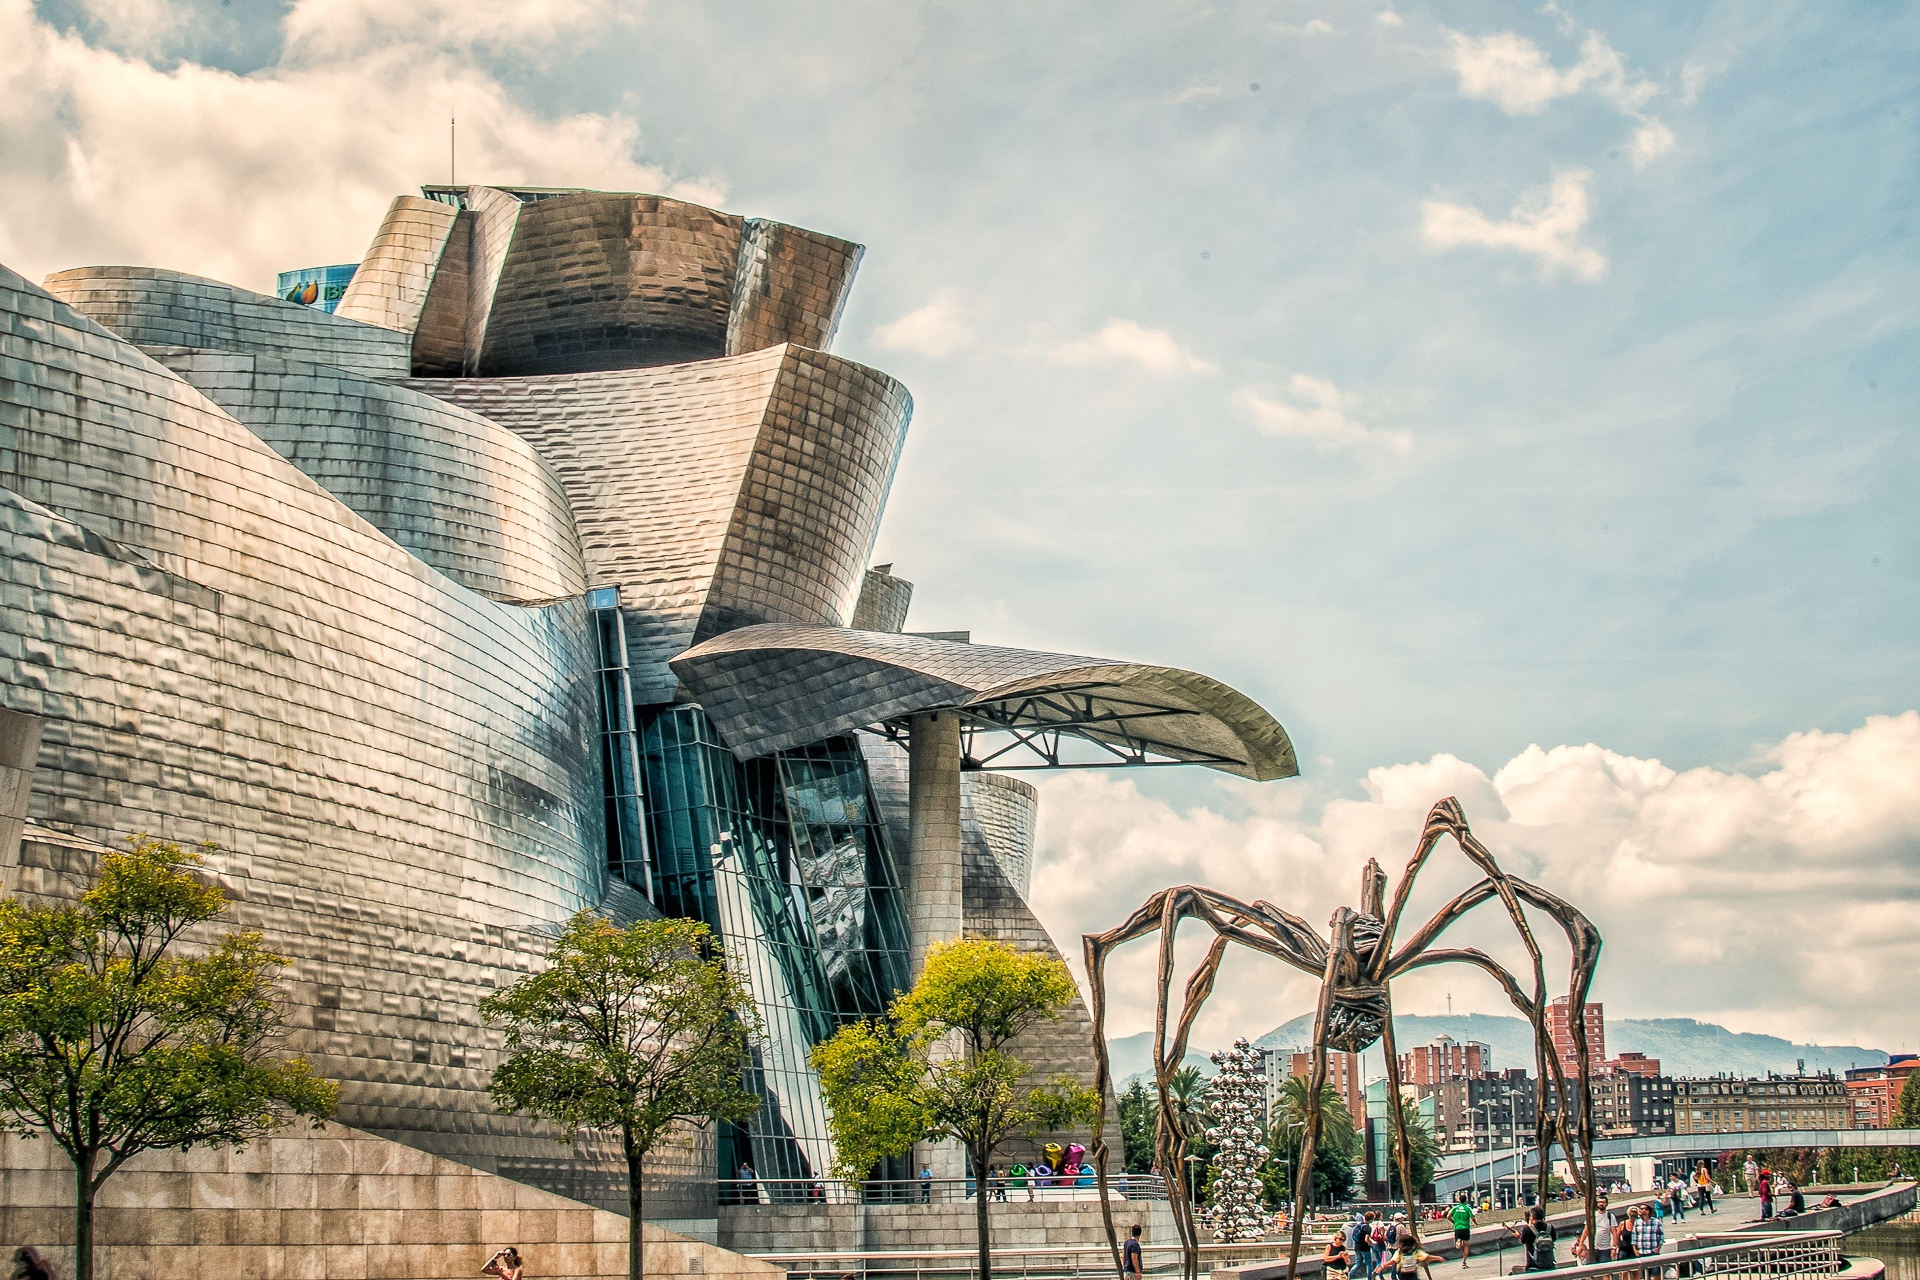 Excursions and tours in Bilbao, Spain